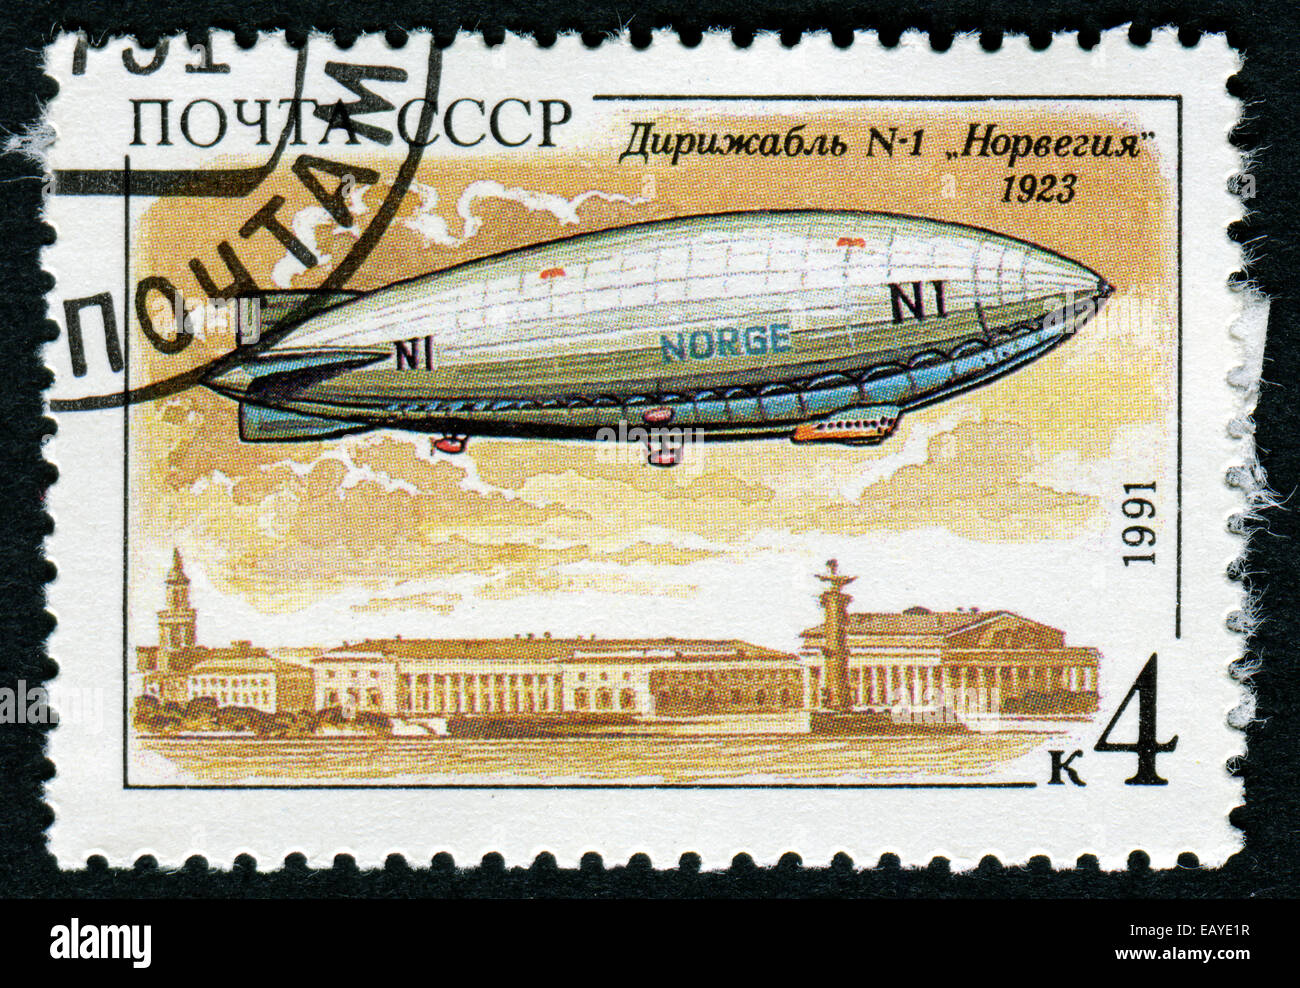 USSR - CIRCA 1991: A stamp printed in the USSR showing airship N-1, circa 1991 Stock Photo